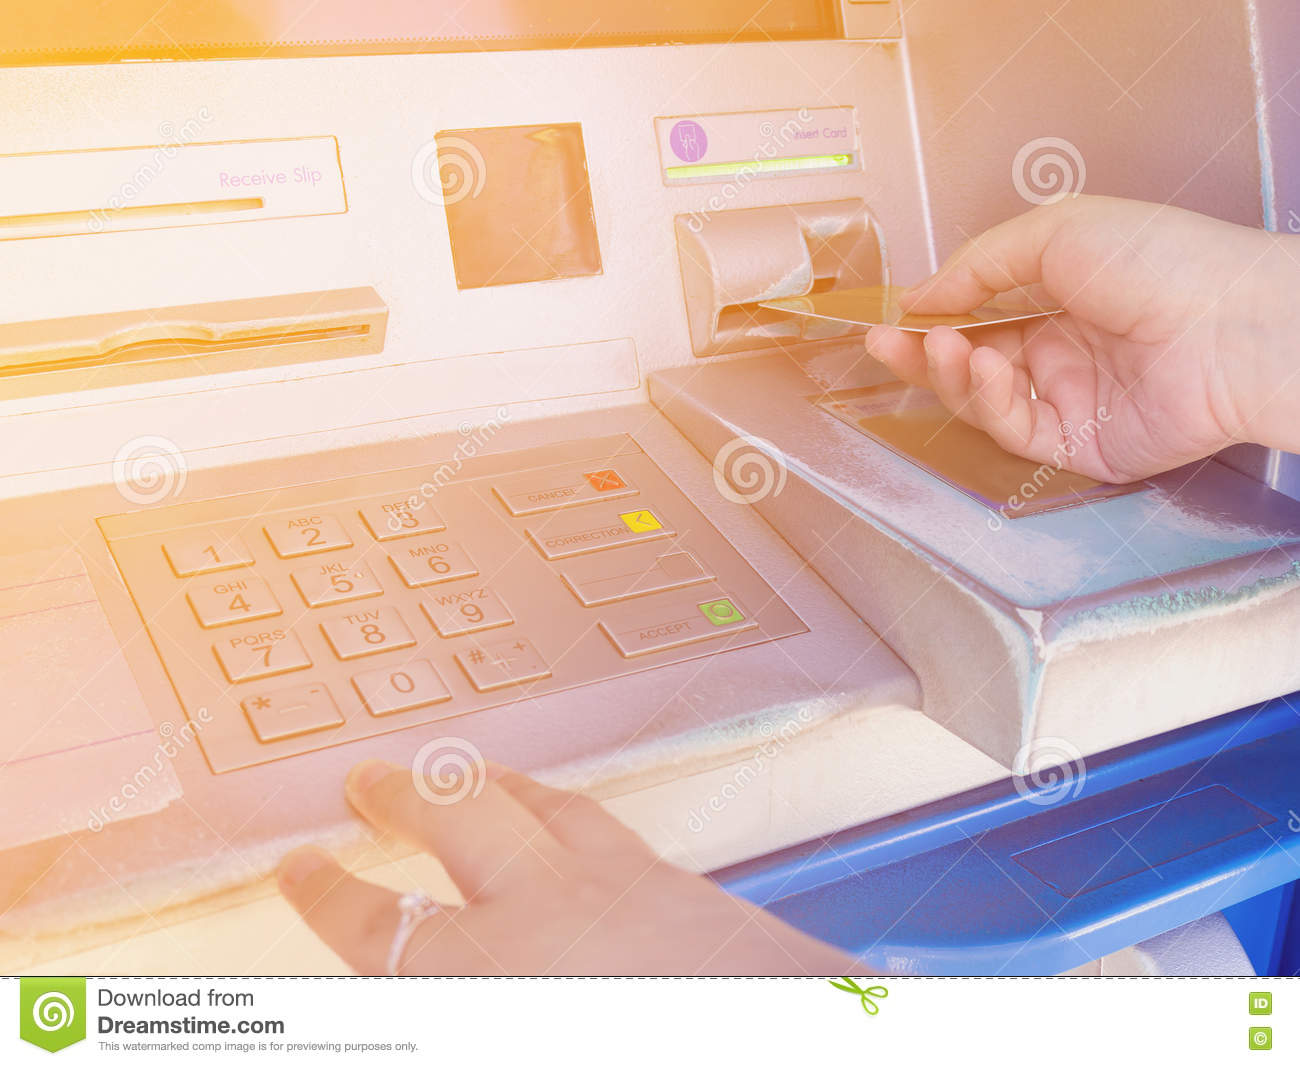 Female hand inserting ATM card into ATM bank machine